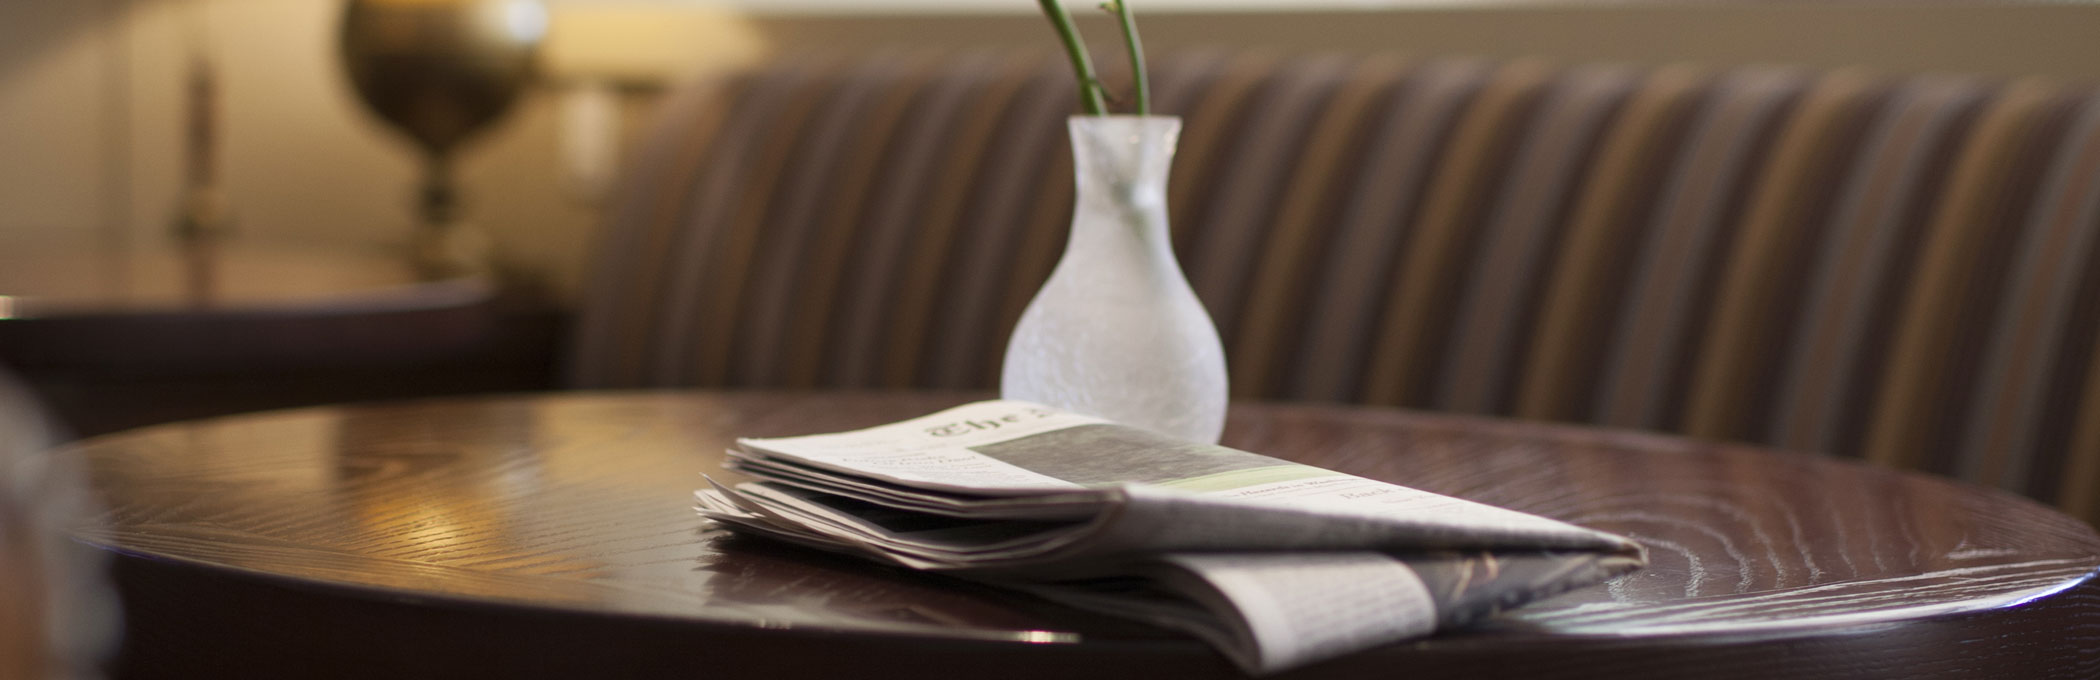 a white vase and a newspaper on a brown table